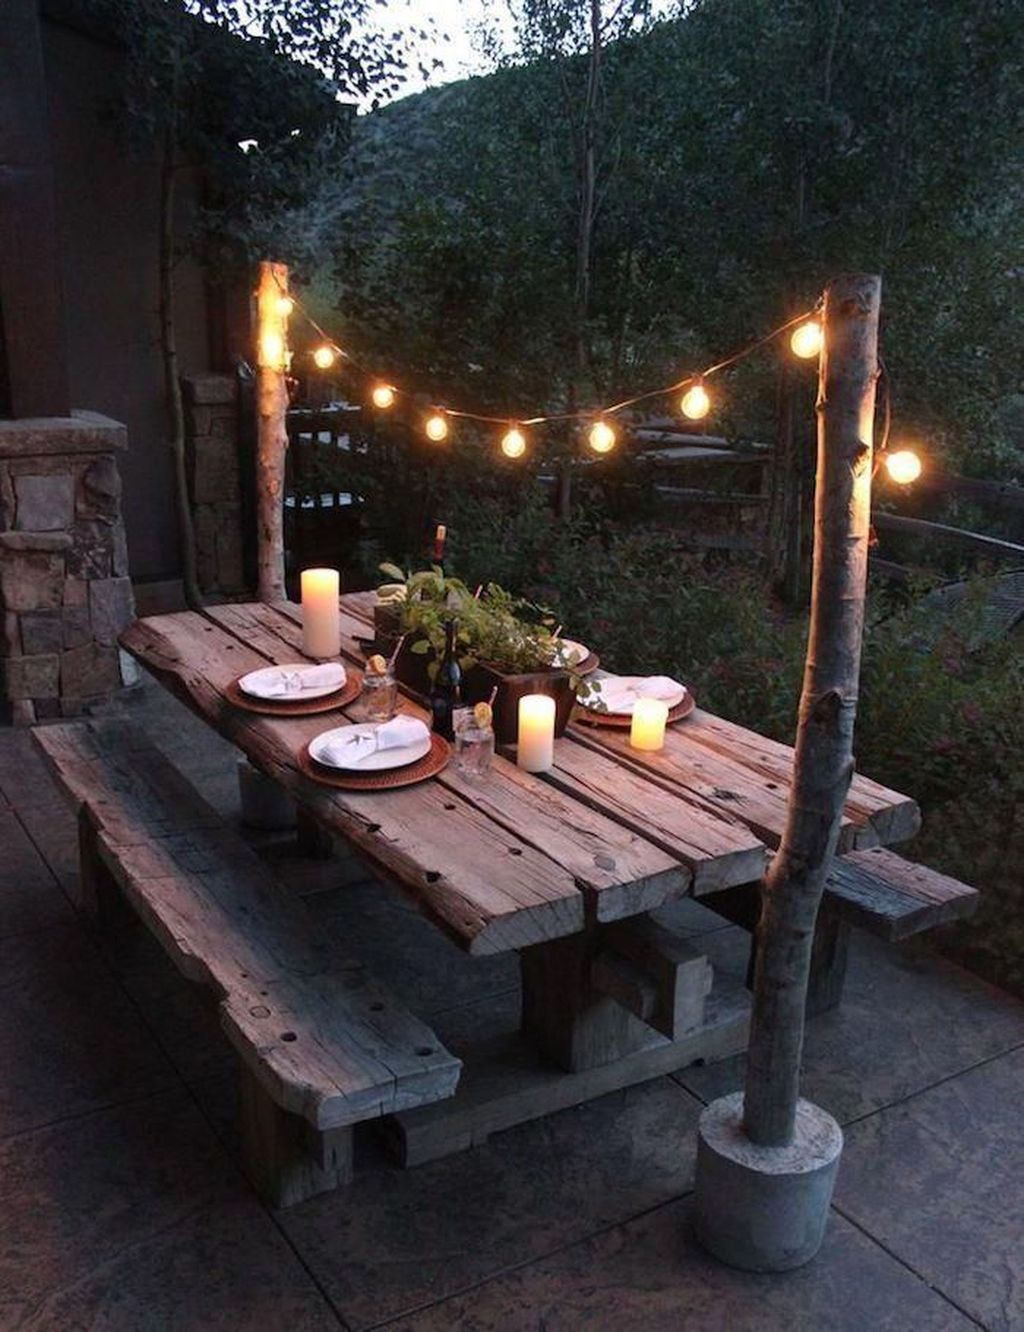 Inspiring Garden Lamps Ideas For Outdoors Decor 02